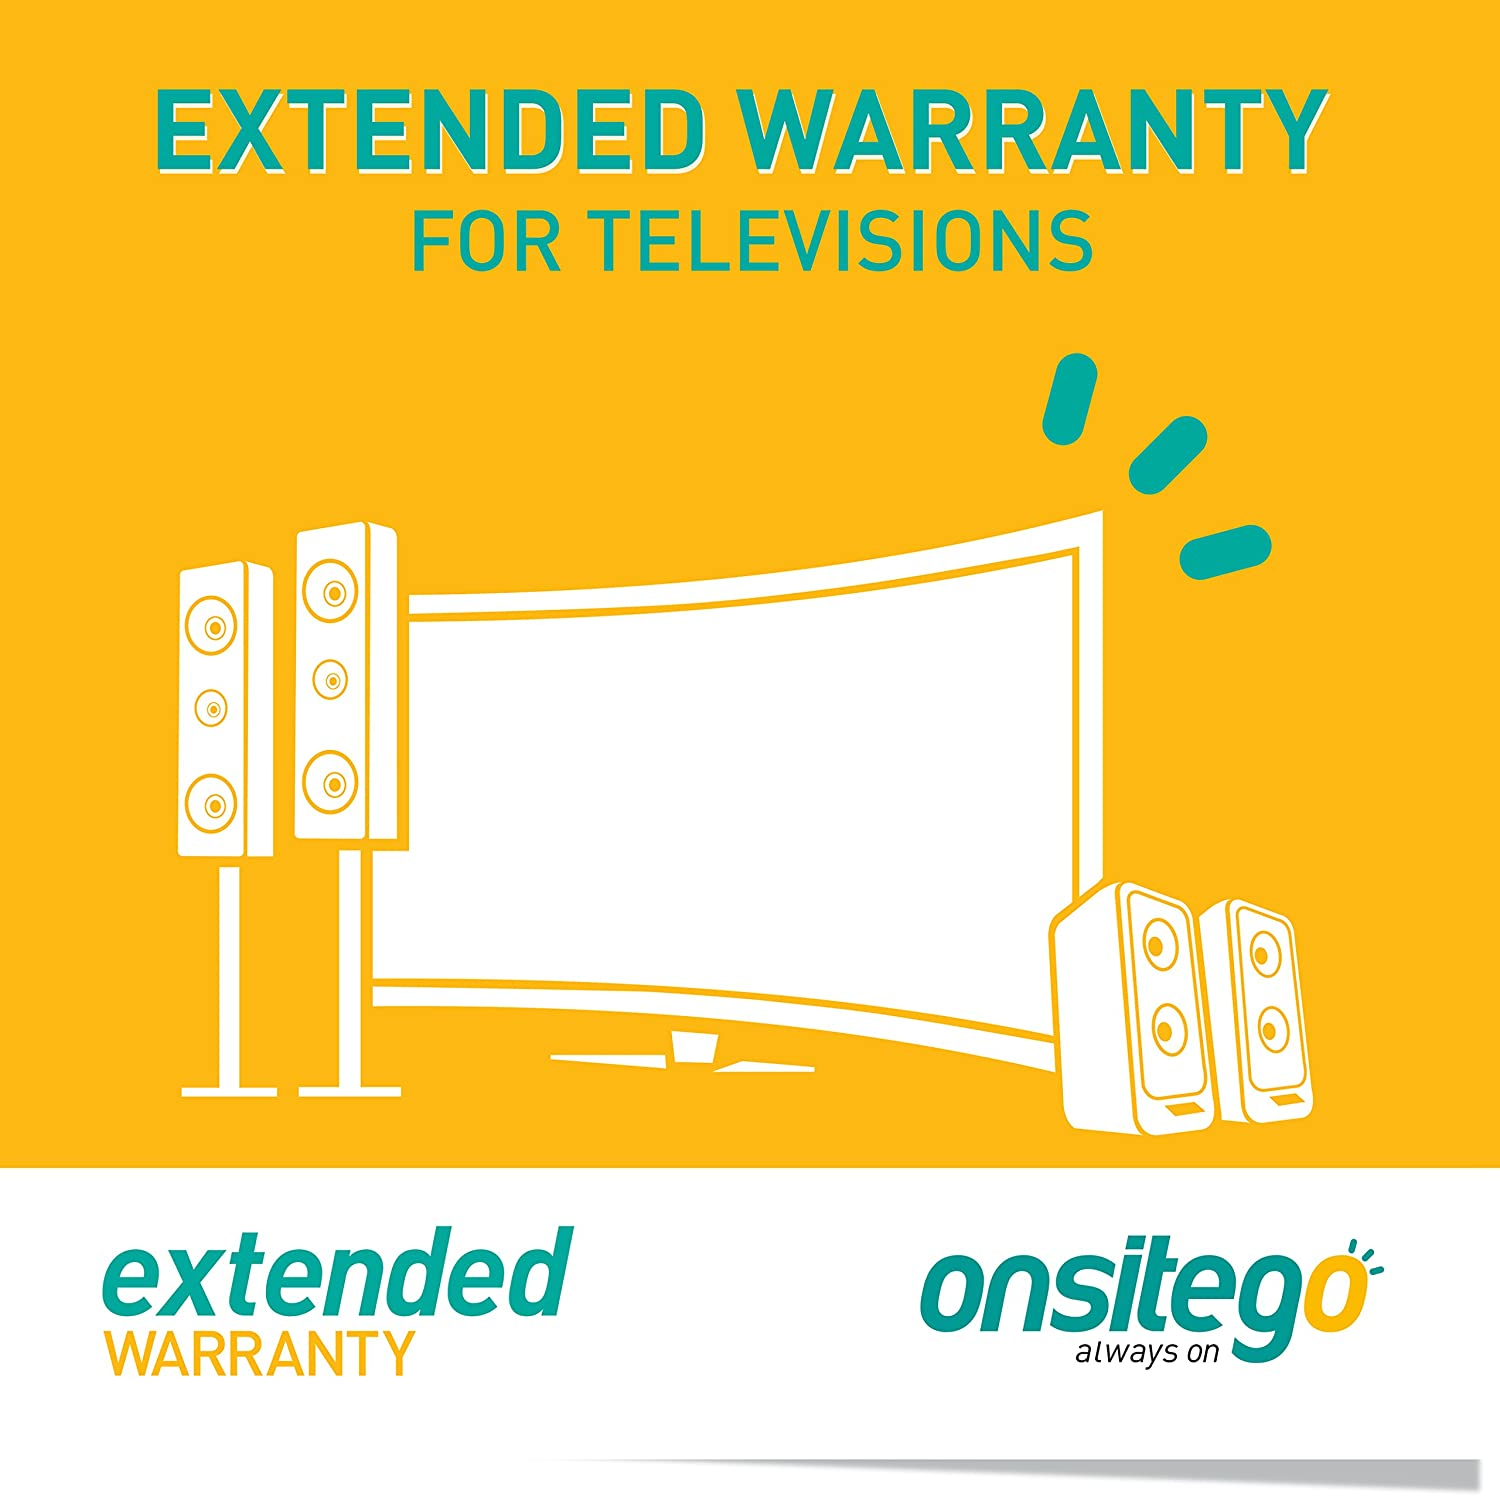 Onsitego 2 Year Extended Warranty For Tvs From Rs 32001 To Bpl Washing Machine Wiring Diagram 55000 Electronics